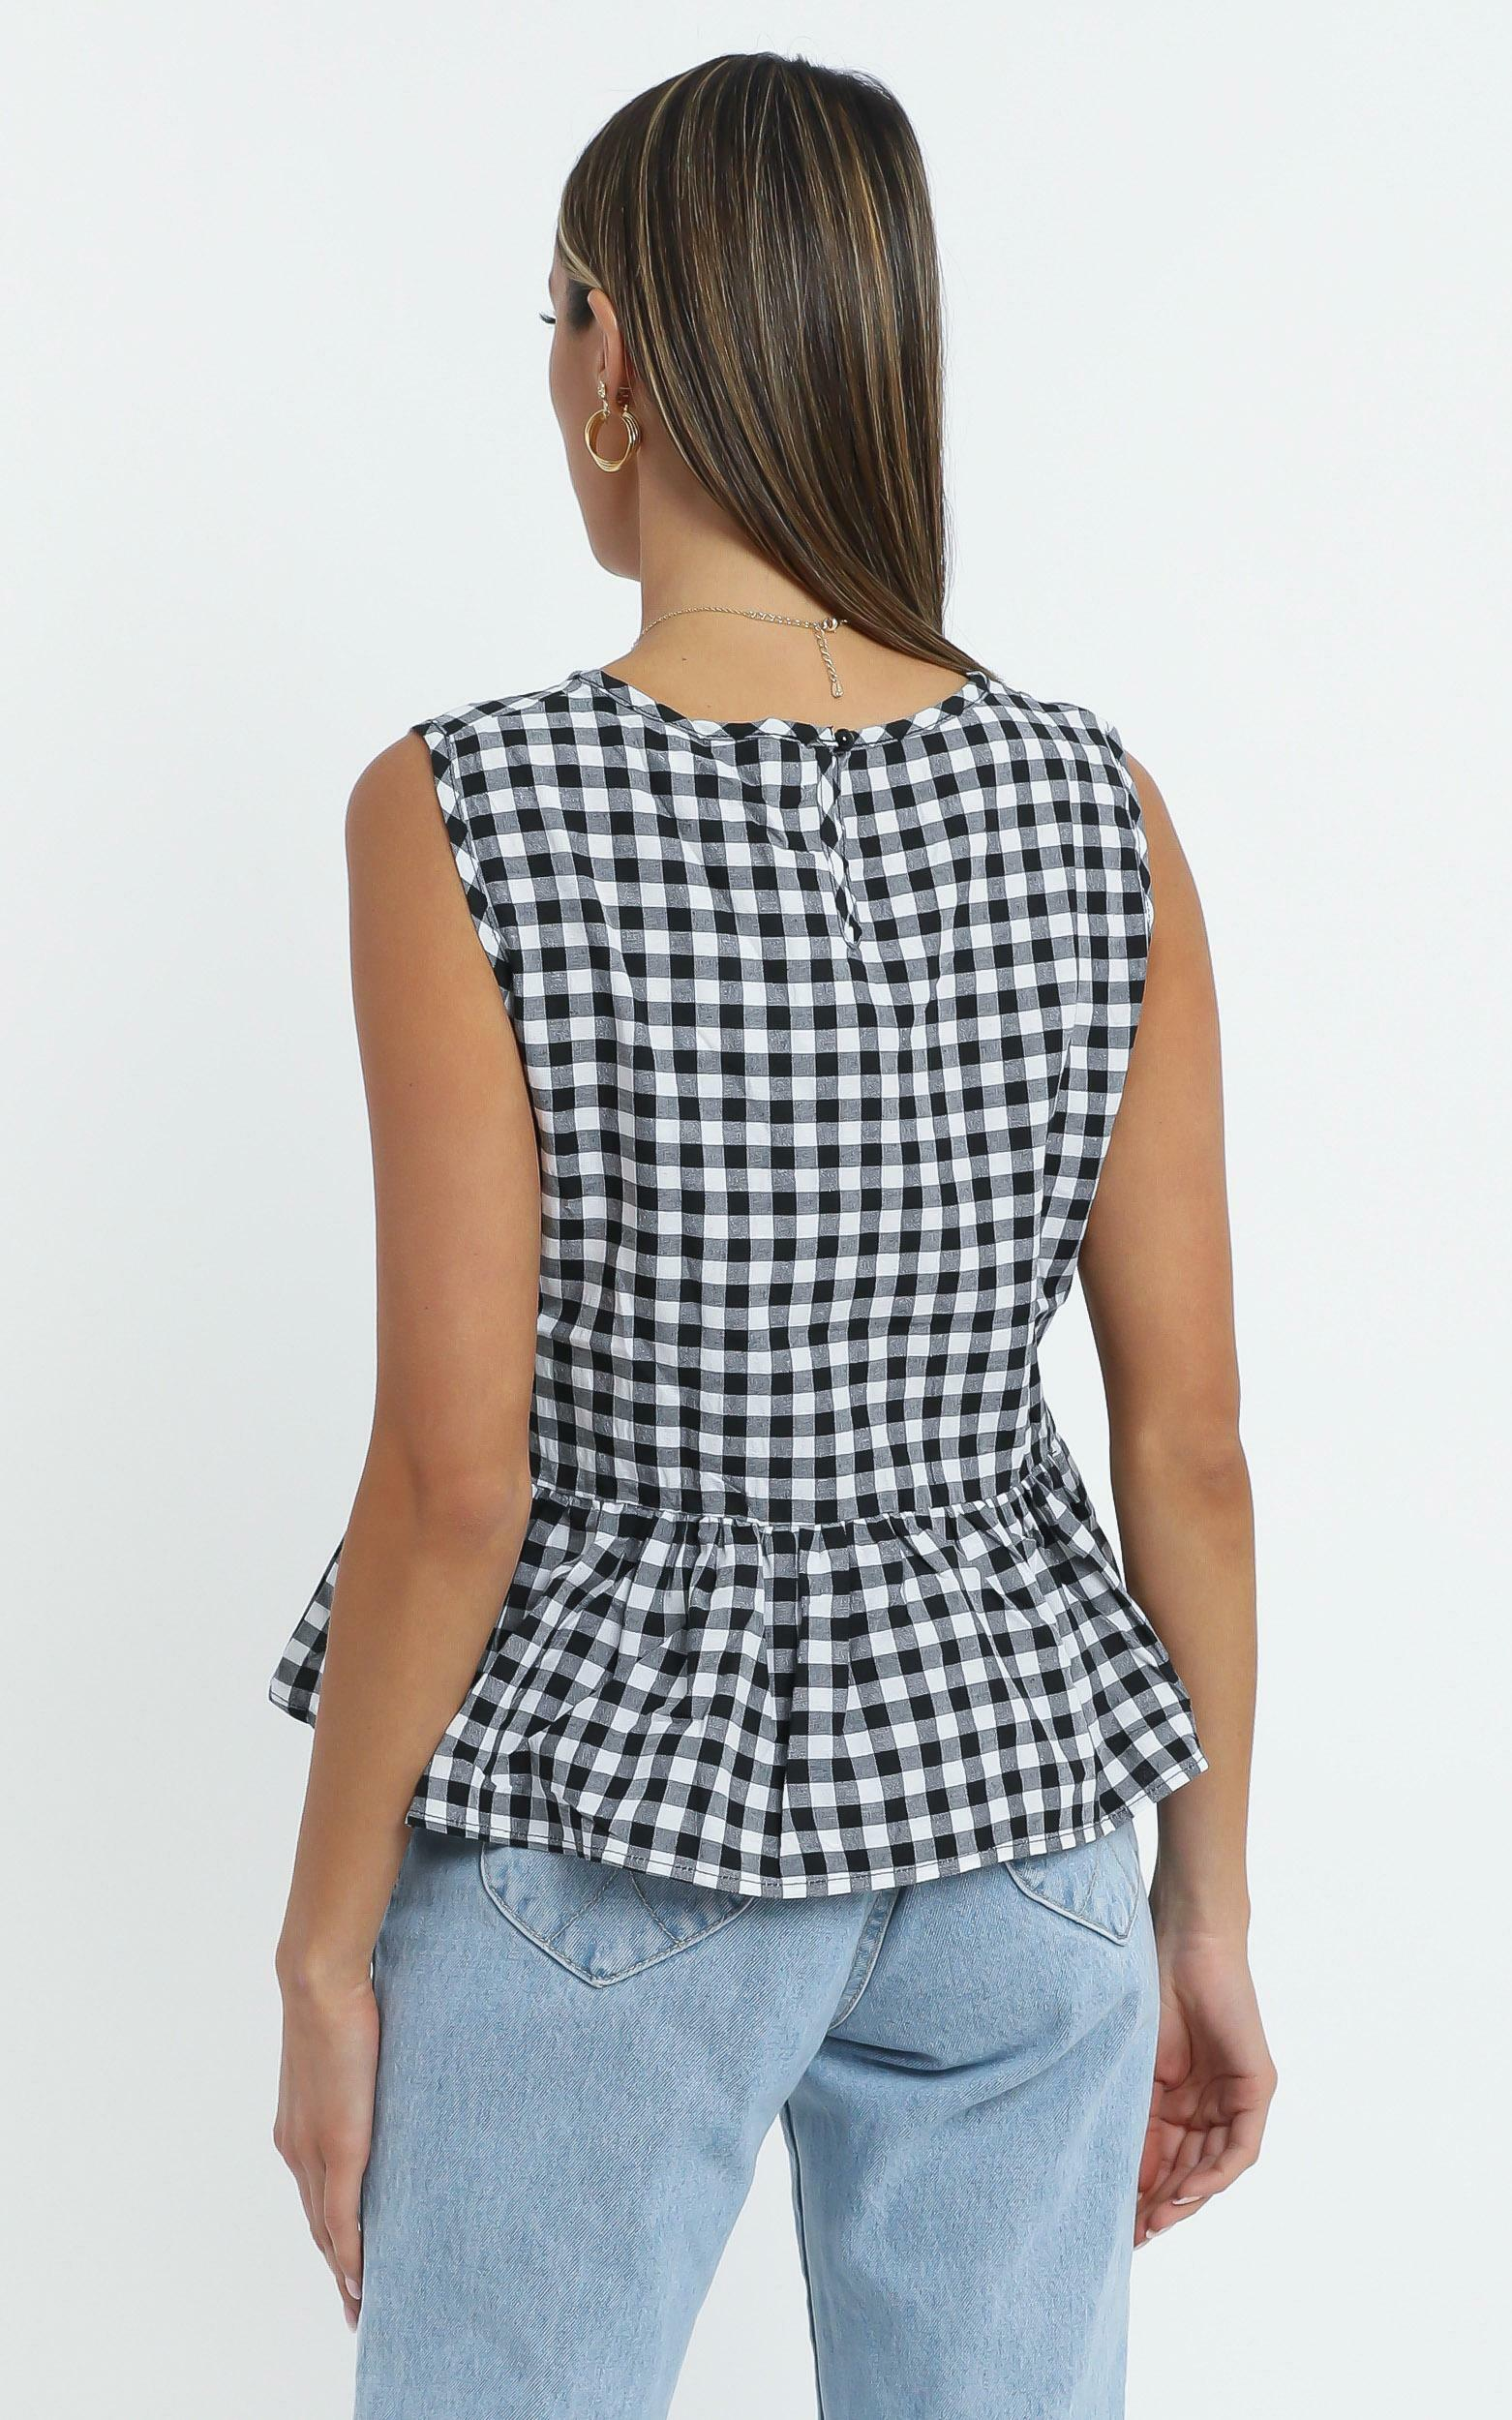 Kianna Top in Black Check - 14 (XL), Black, hi-res image number null